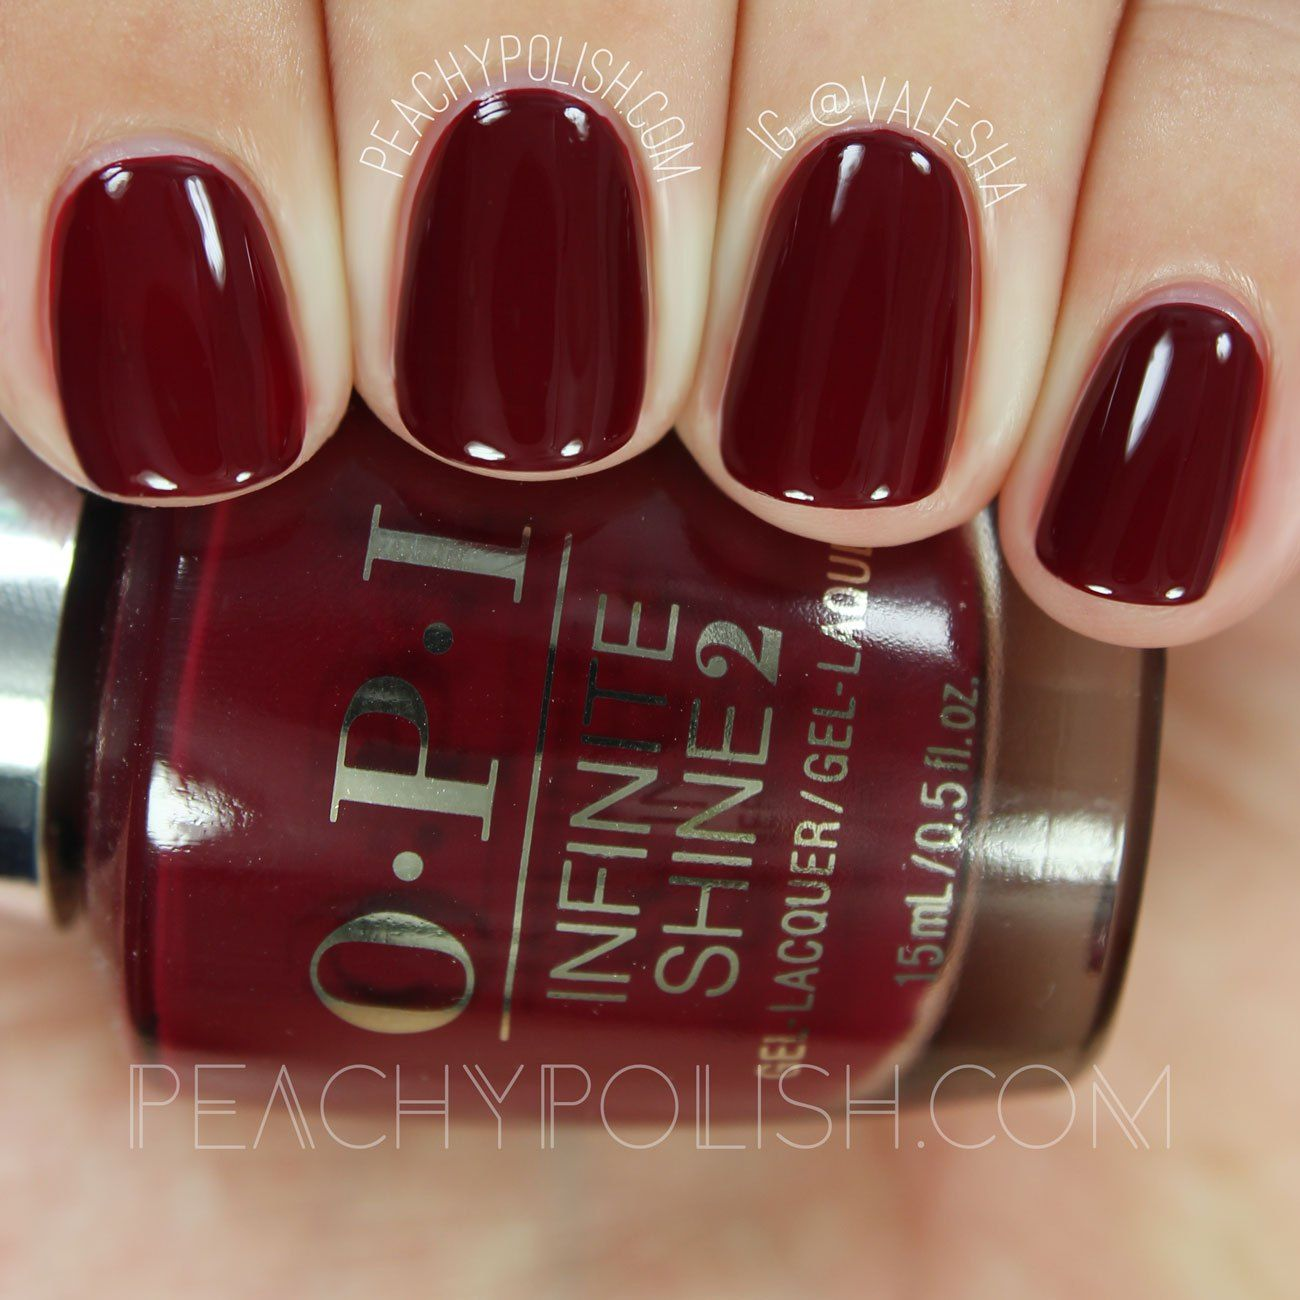 Opi Malaga Wine Infinite Shine Iconic Collection Peachy